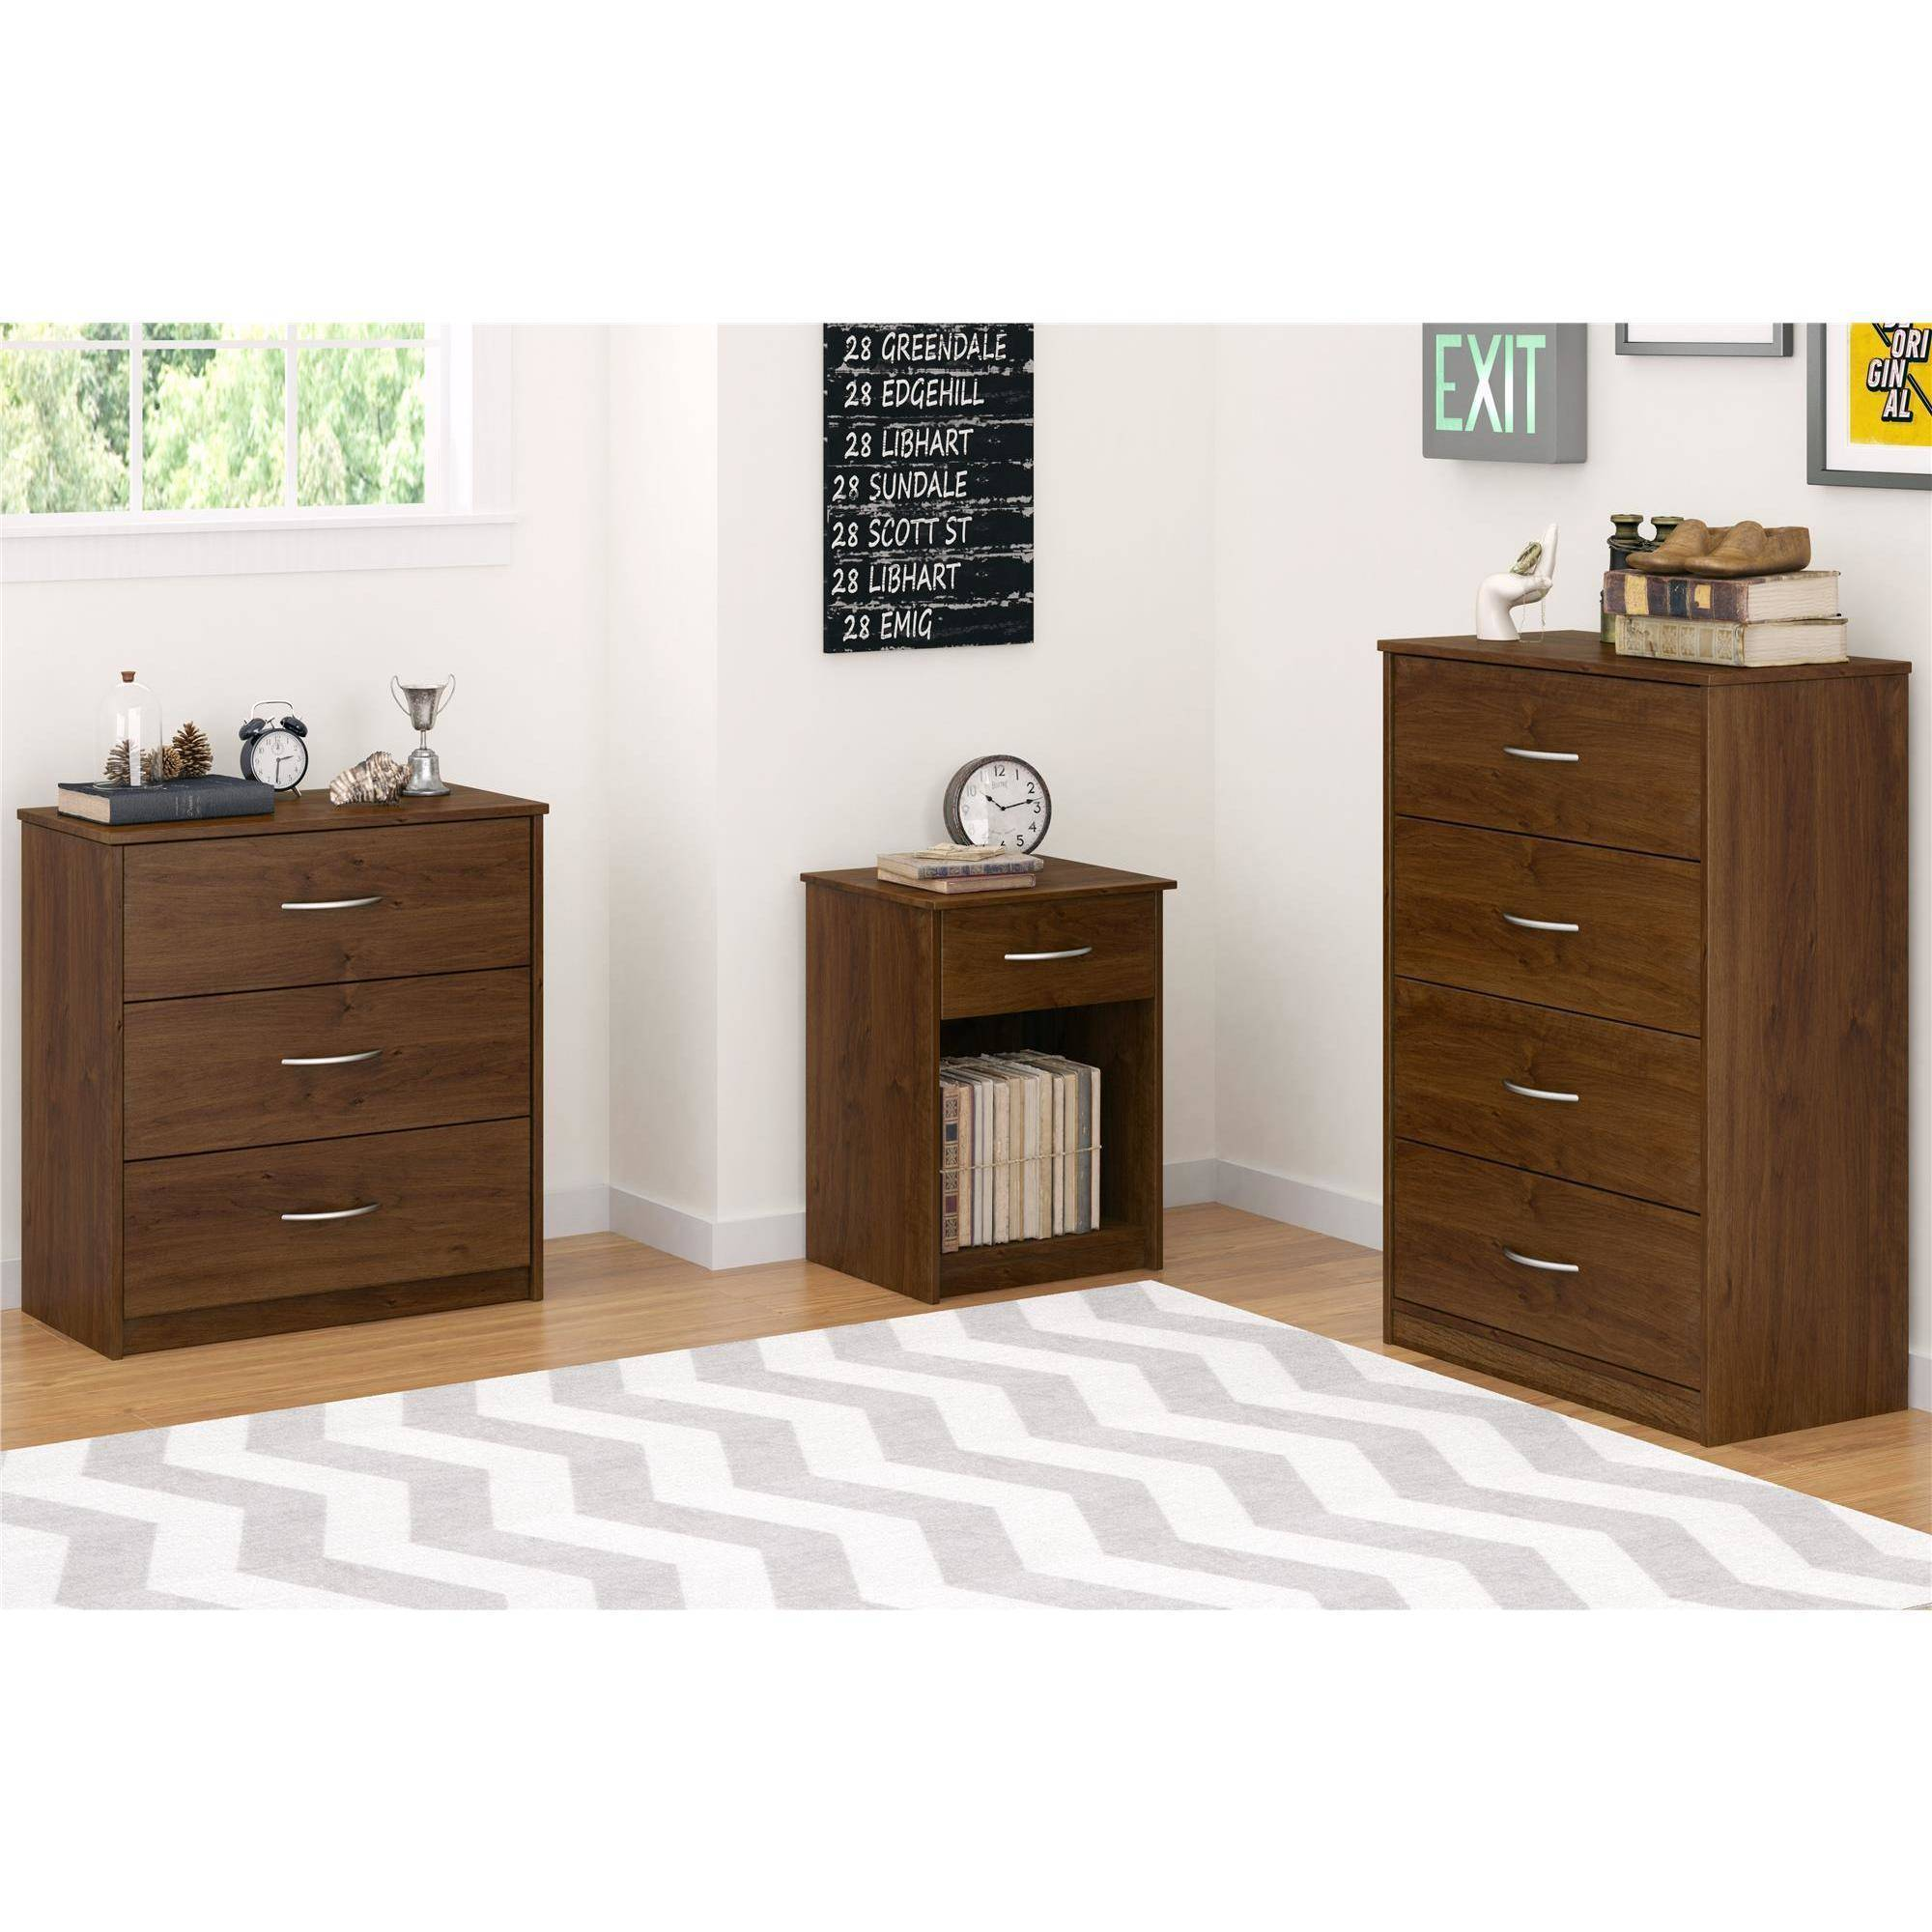 White And Walnut Bedroom Furniture 3 Drawer Dresser Chest Bedroom Furniture Black Brown White Storage